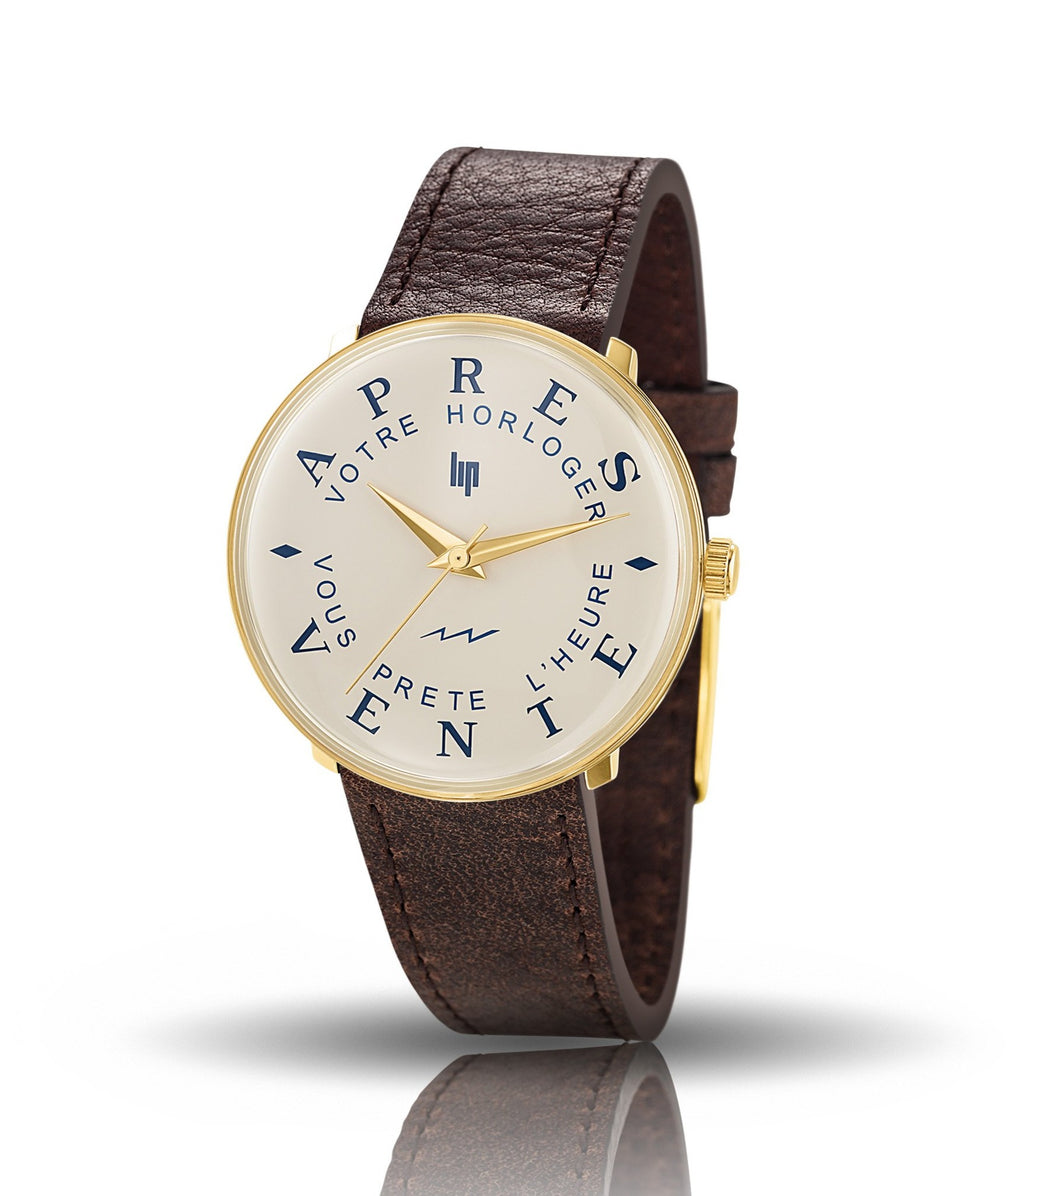 LIP service watch gold 34mm